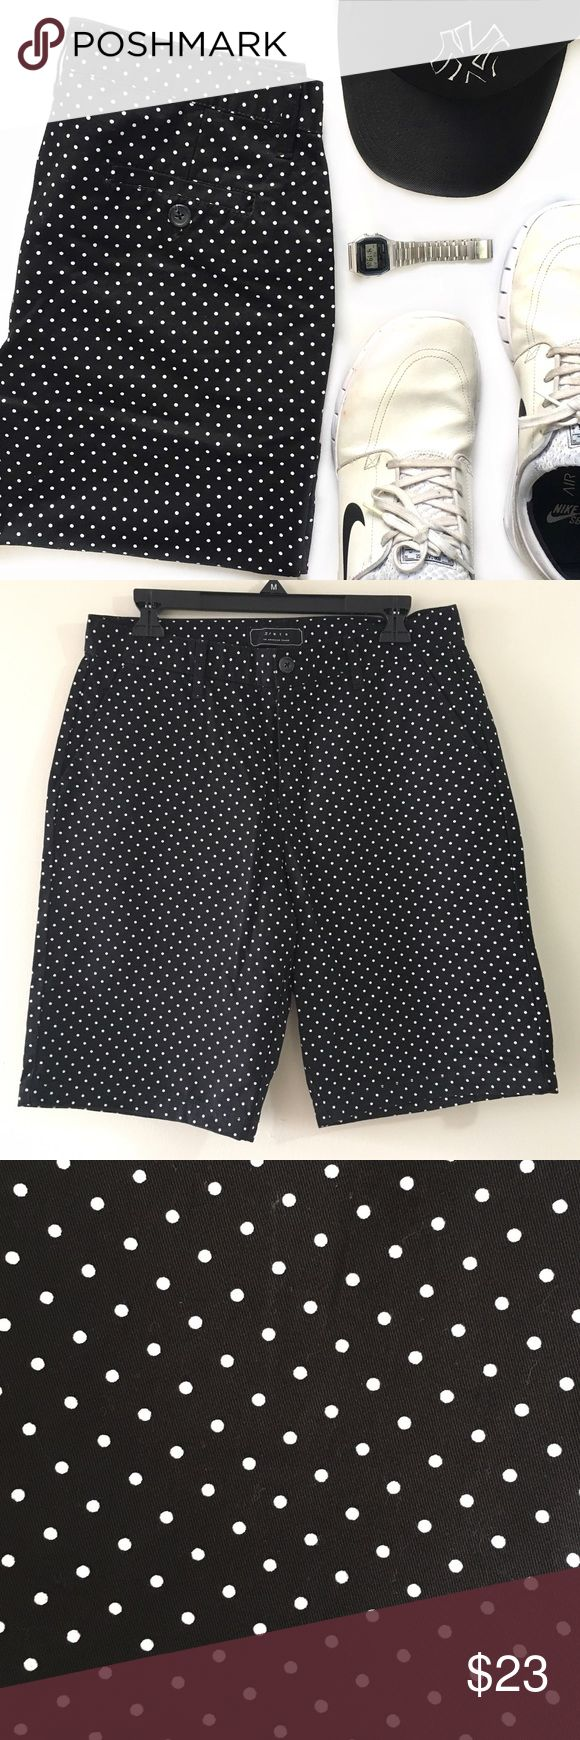 """NWT Black Polka Dot Bermuda Shorts NWT. Two front pockets and two back button pockets. Button and zipper closure. Belt loops. 100% cotton. Length: 21"""" Inseam: 10.25"""" 21men Shorts Cargo"""